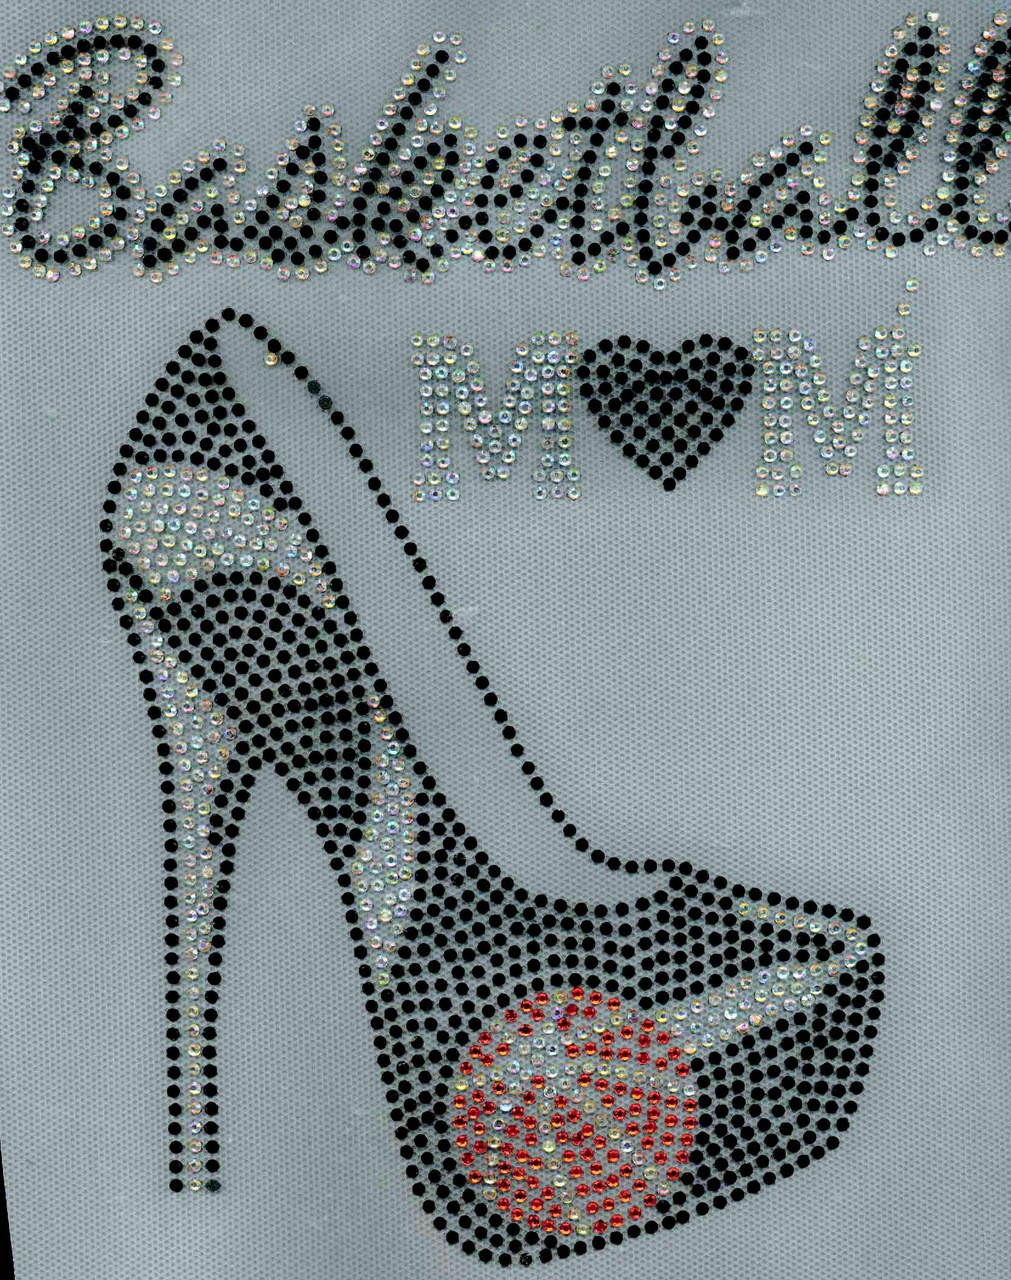 ... Basketball Mom Heel Stiletto (Black) Rhinestone Transfer. Image 1 11cd459cce04